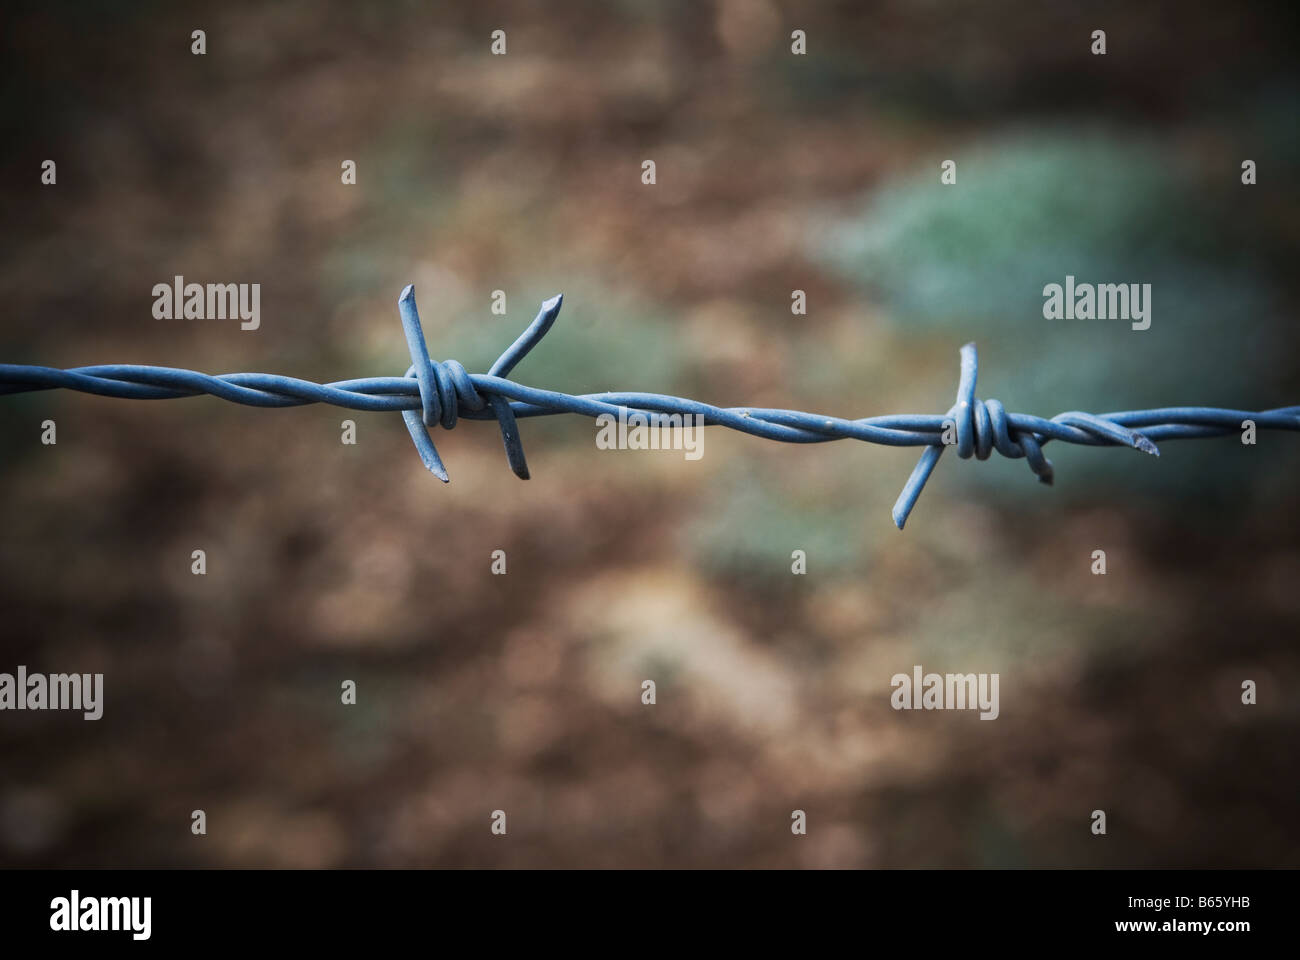 Barbed wire Lebanon Middle East Stock Photo